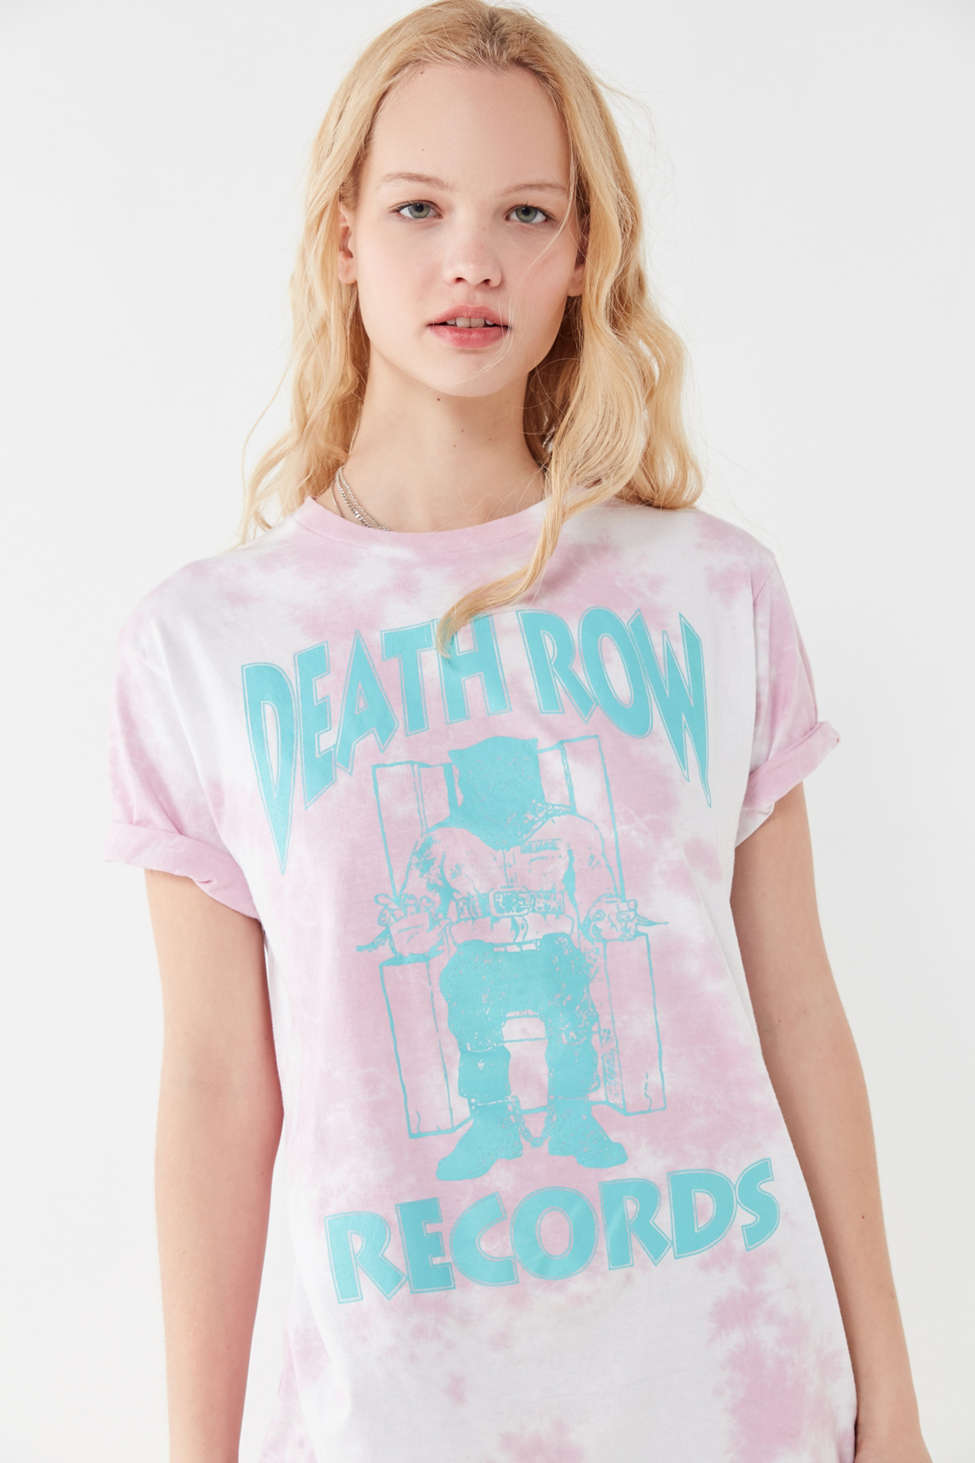 Death Row Records Tie Dye Tee by Urban Outfitters